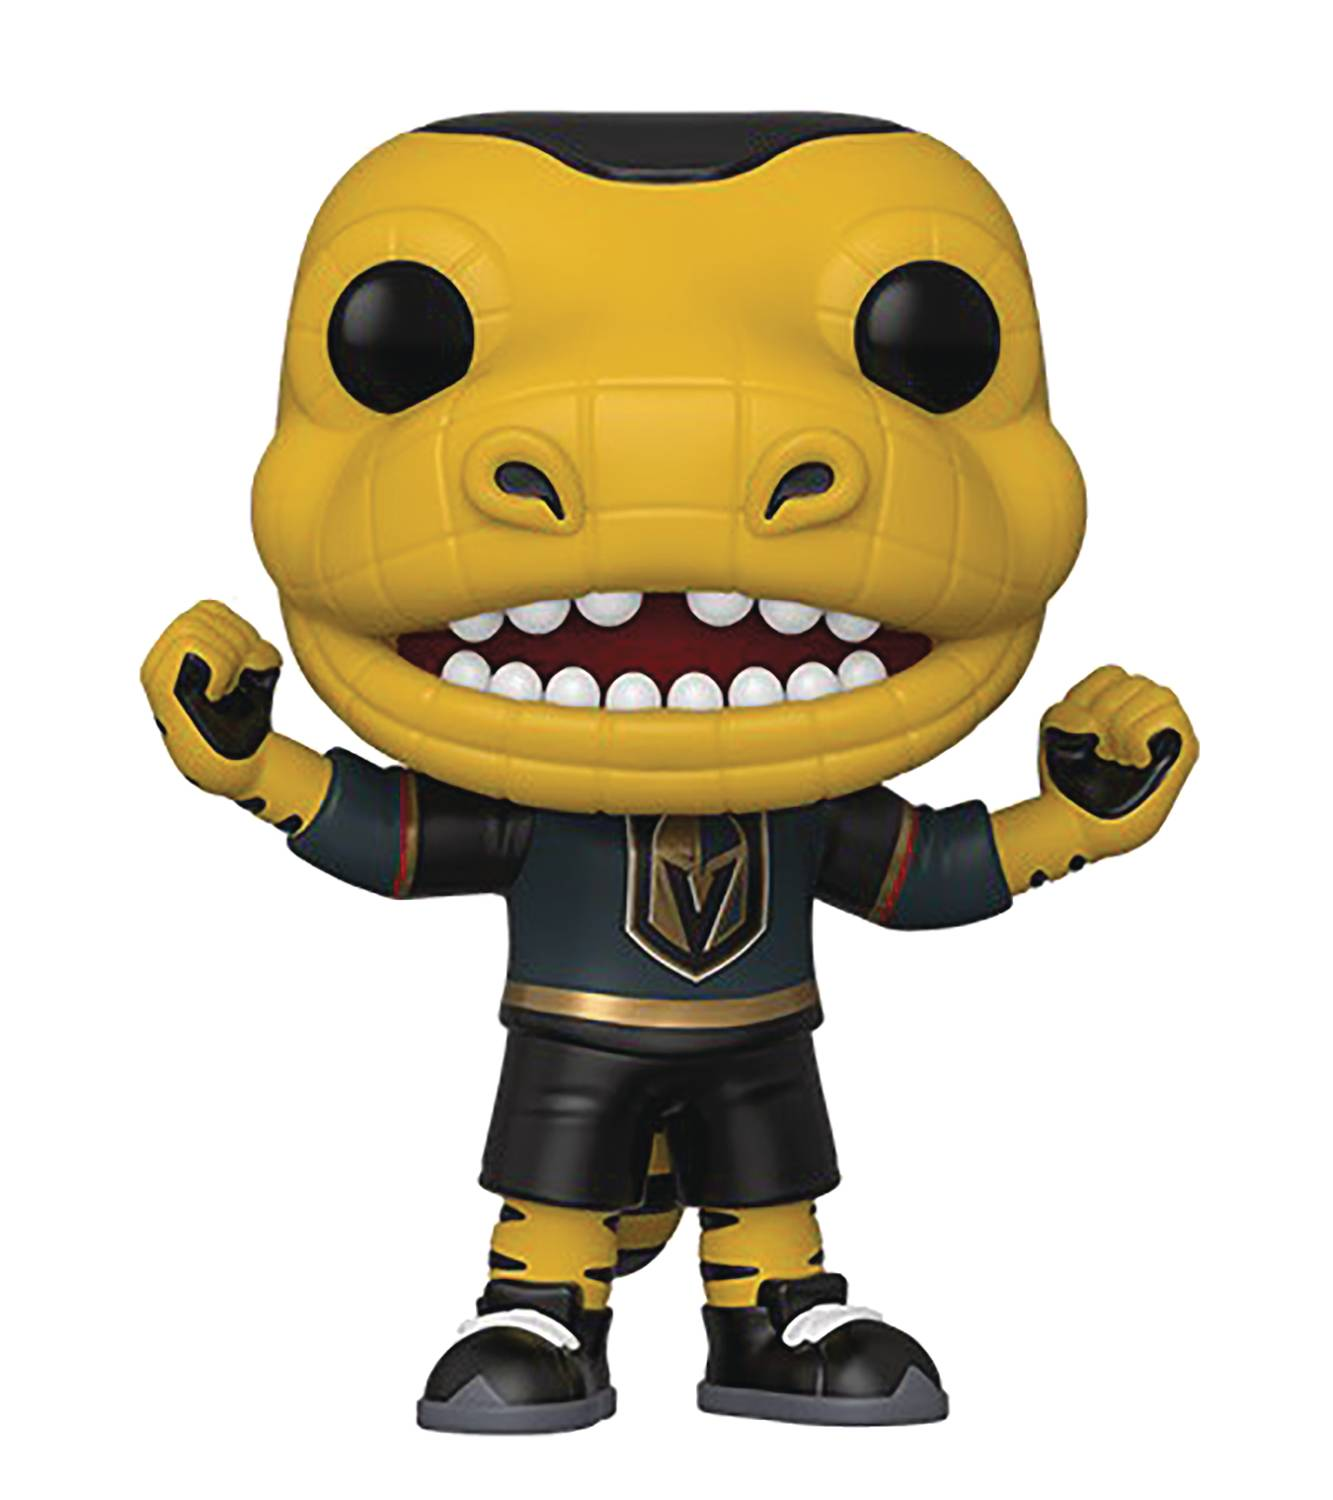 POP MASCOTS KNIGHTS CHANCE GILA MONSTER VINYL FIG